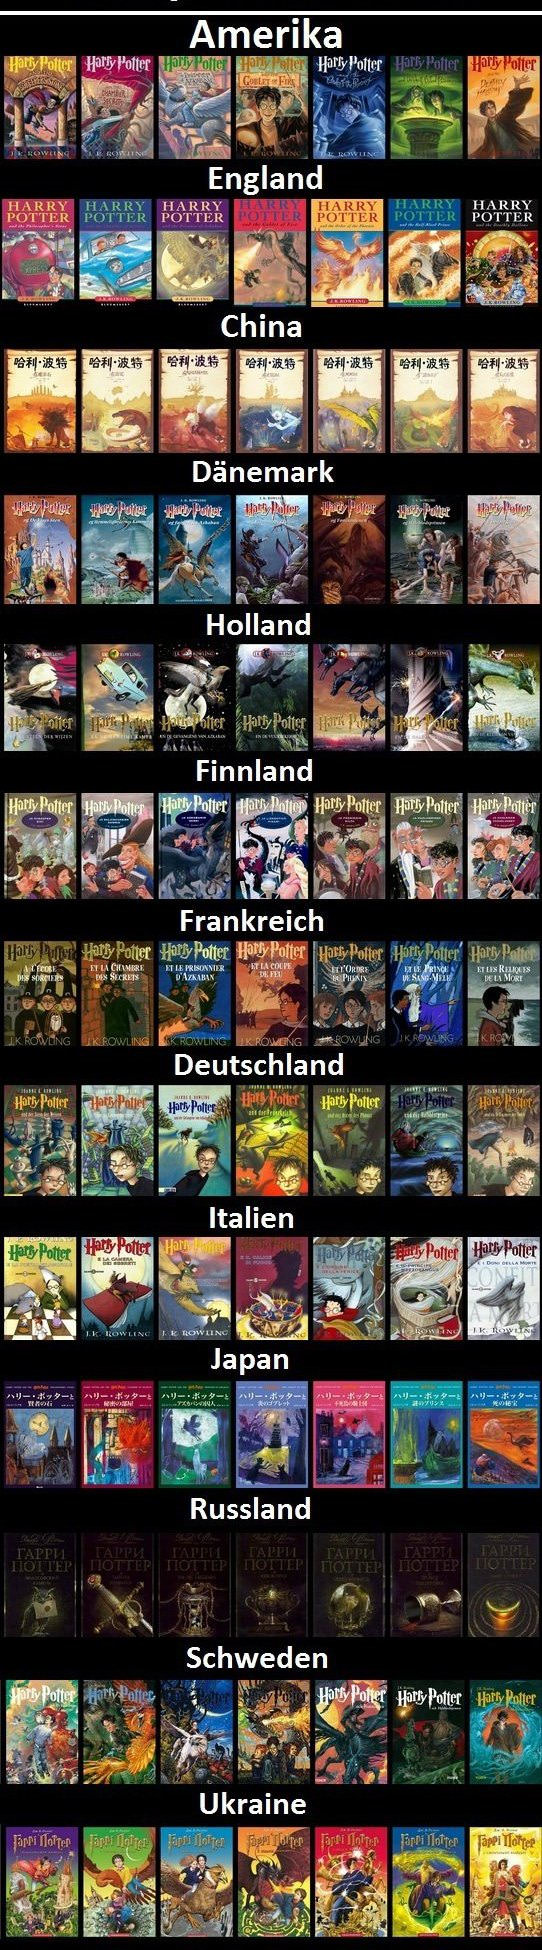 Harry Potter Book Covers From Different Countries What S Your Favorite Harry Potter Book Covers Harry Potter Pictures Harry Potter Collection